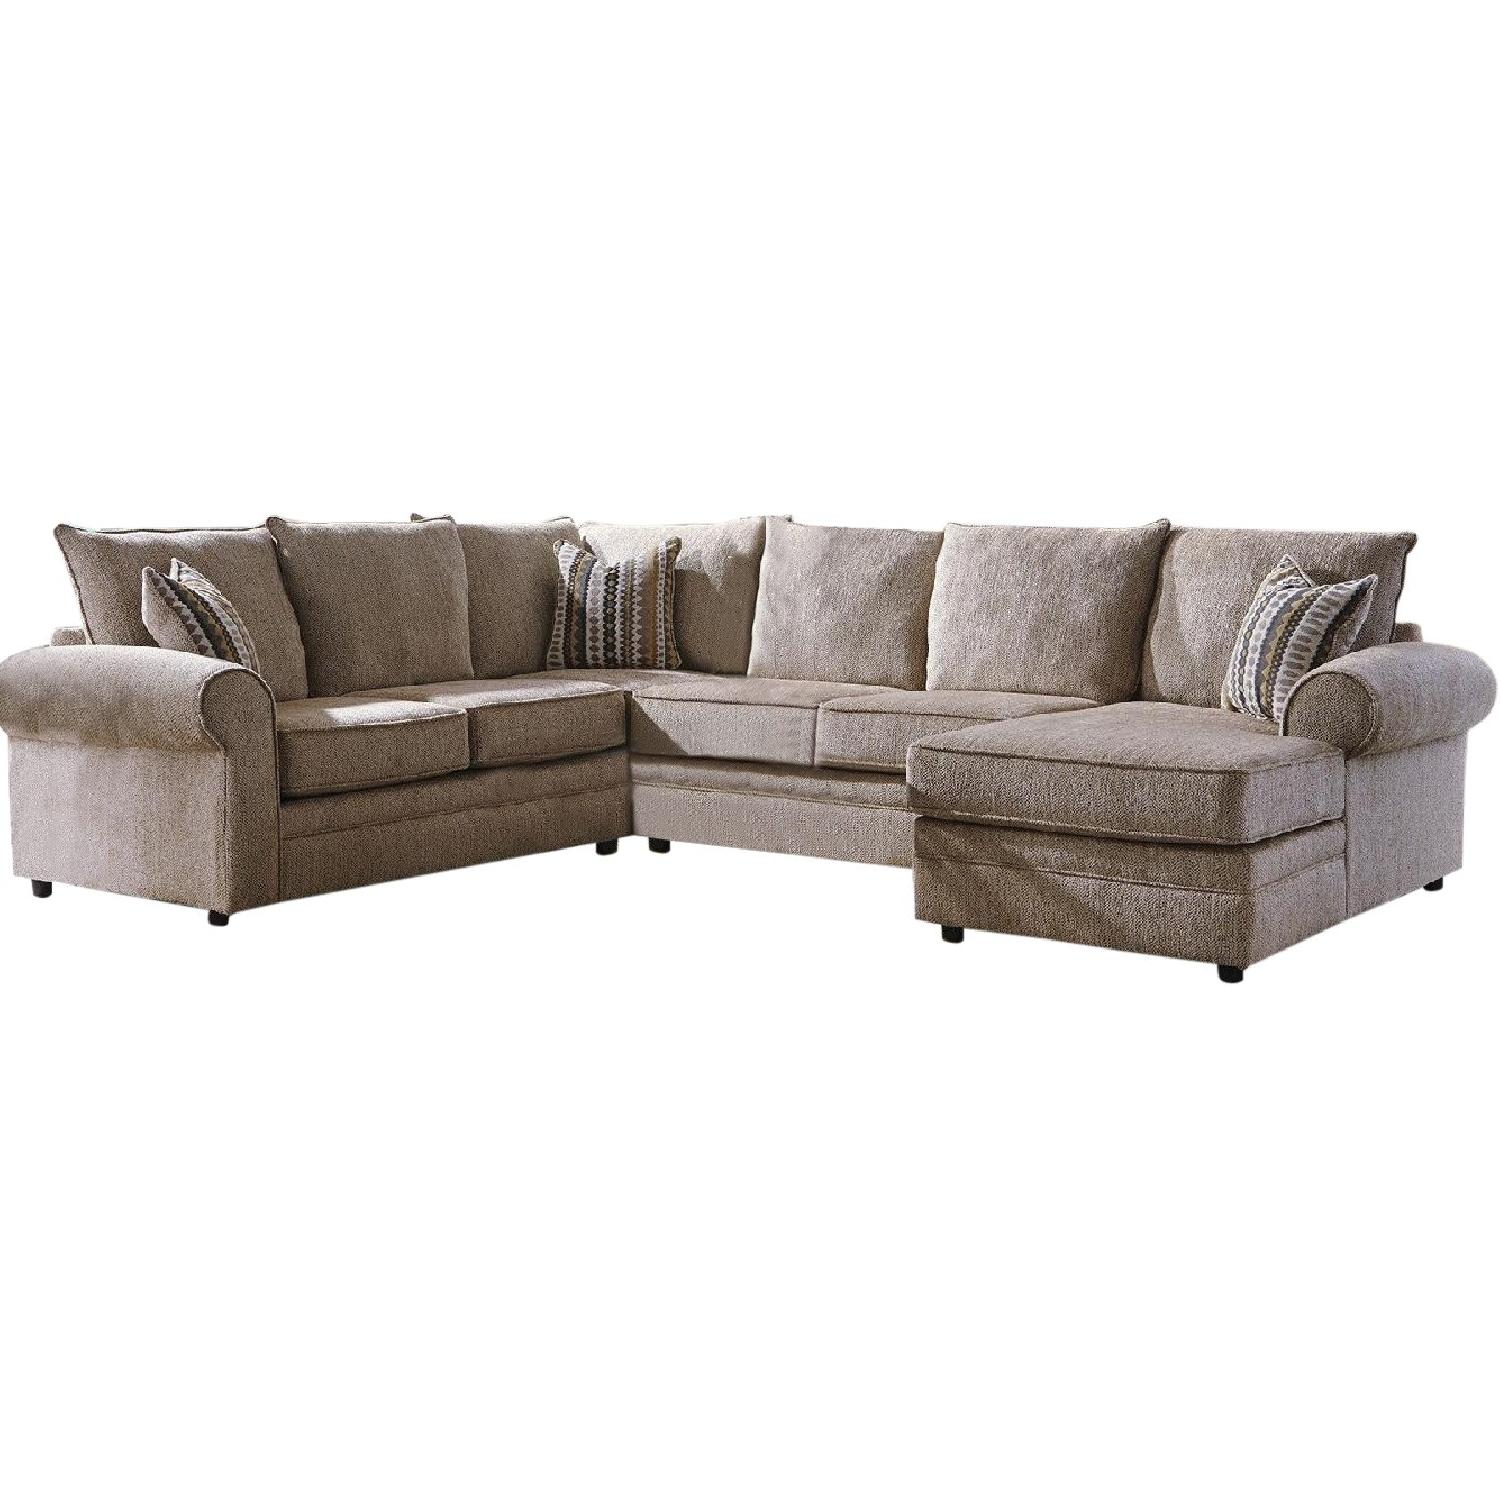 Sectional In Soft Chenille Fabric W High Density Foam